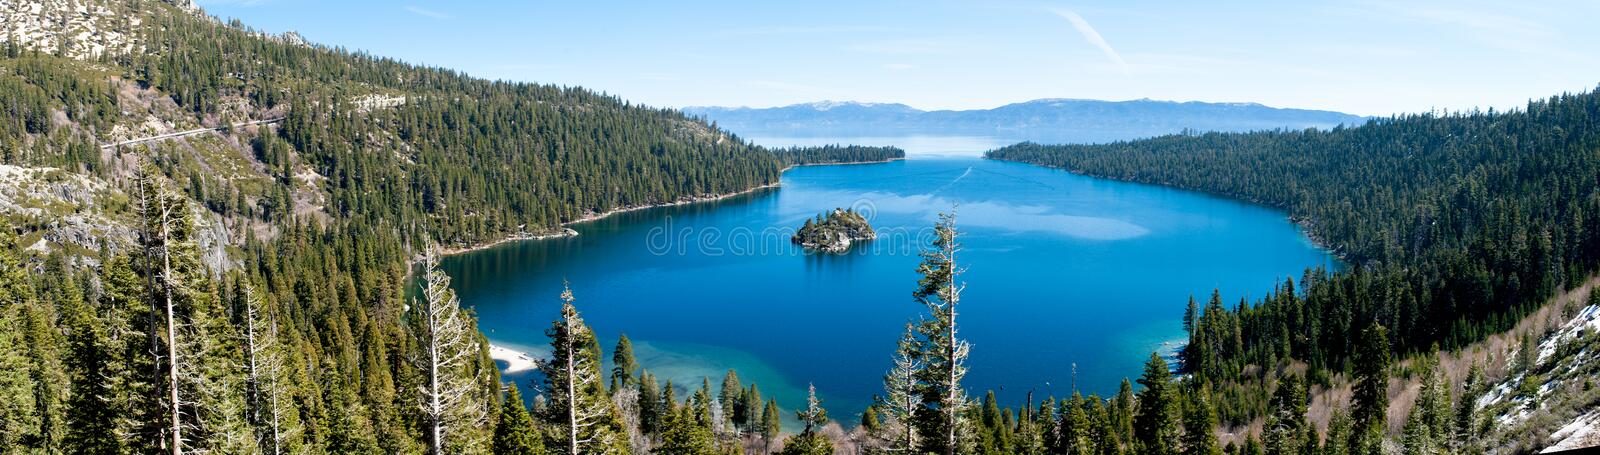 Download Emerald Bay stock photo. Image of woods, hiking, california - 25004324